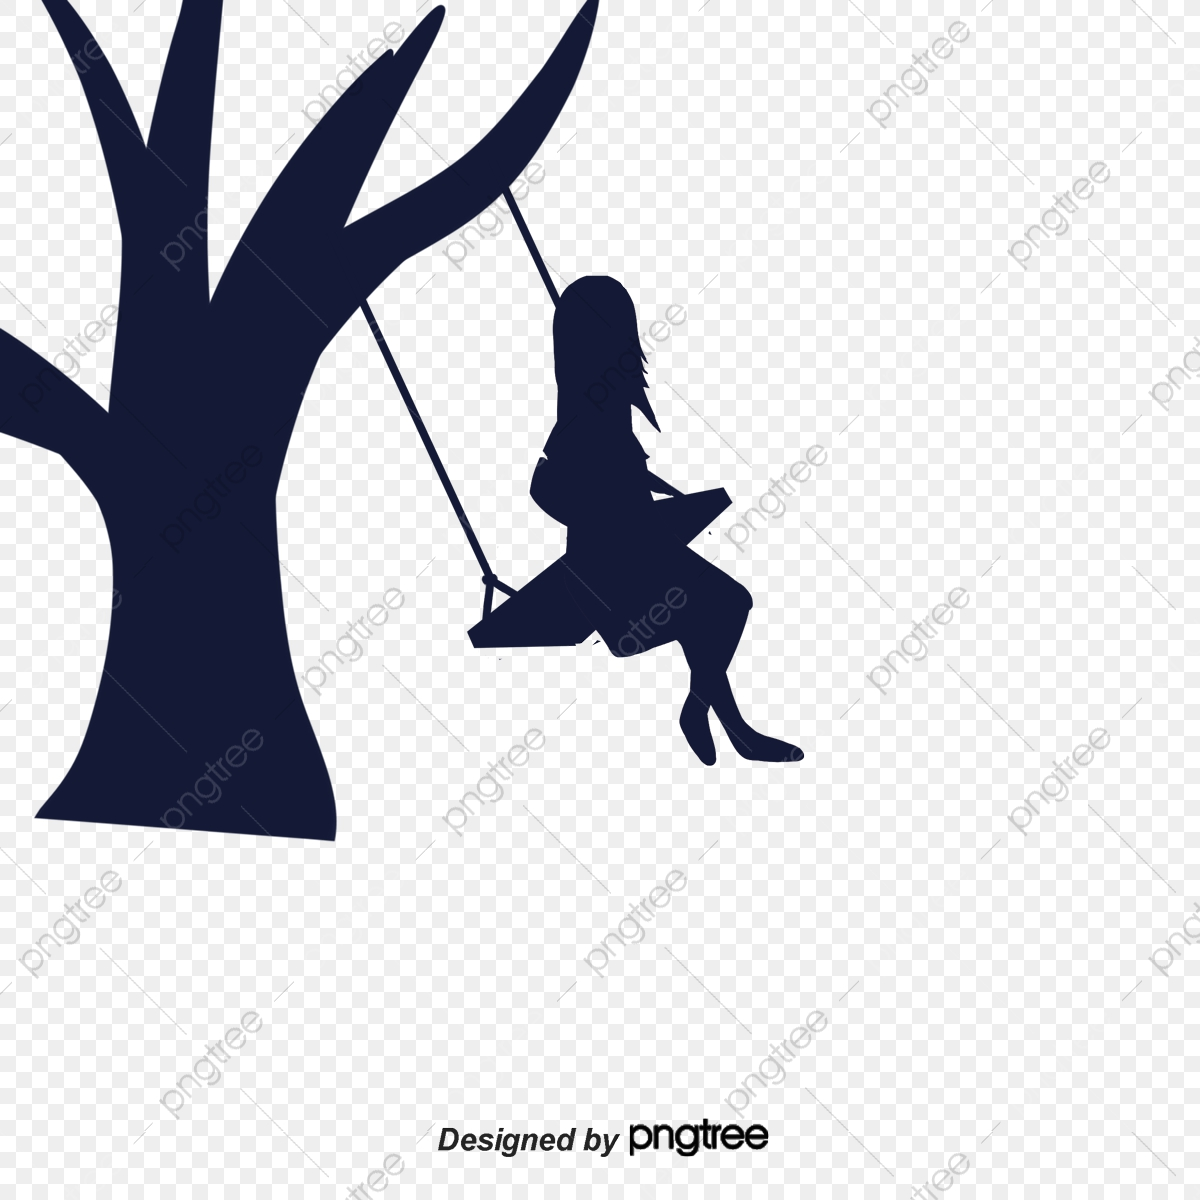 Girl On The Swing Silhouette To Swing Silhouette Happy Png Transparent Clipart Image And Psd File For Free Download